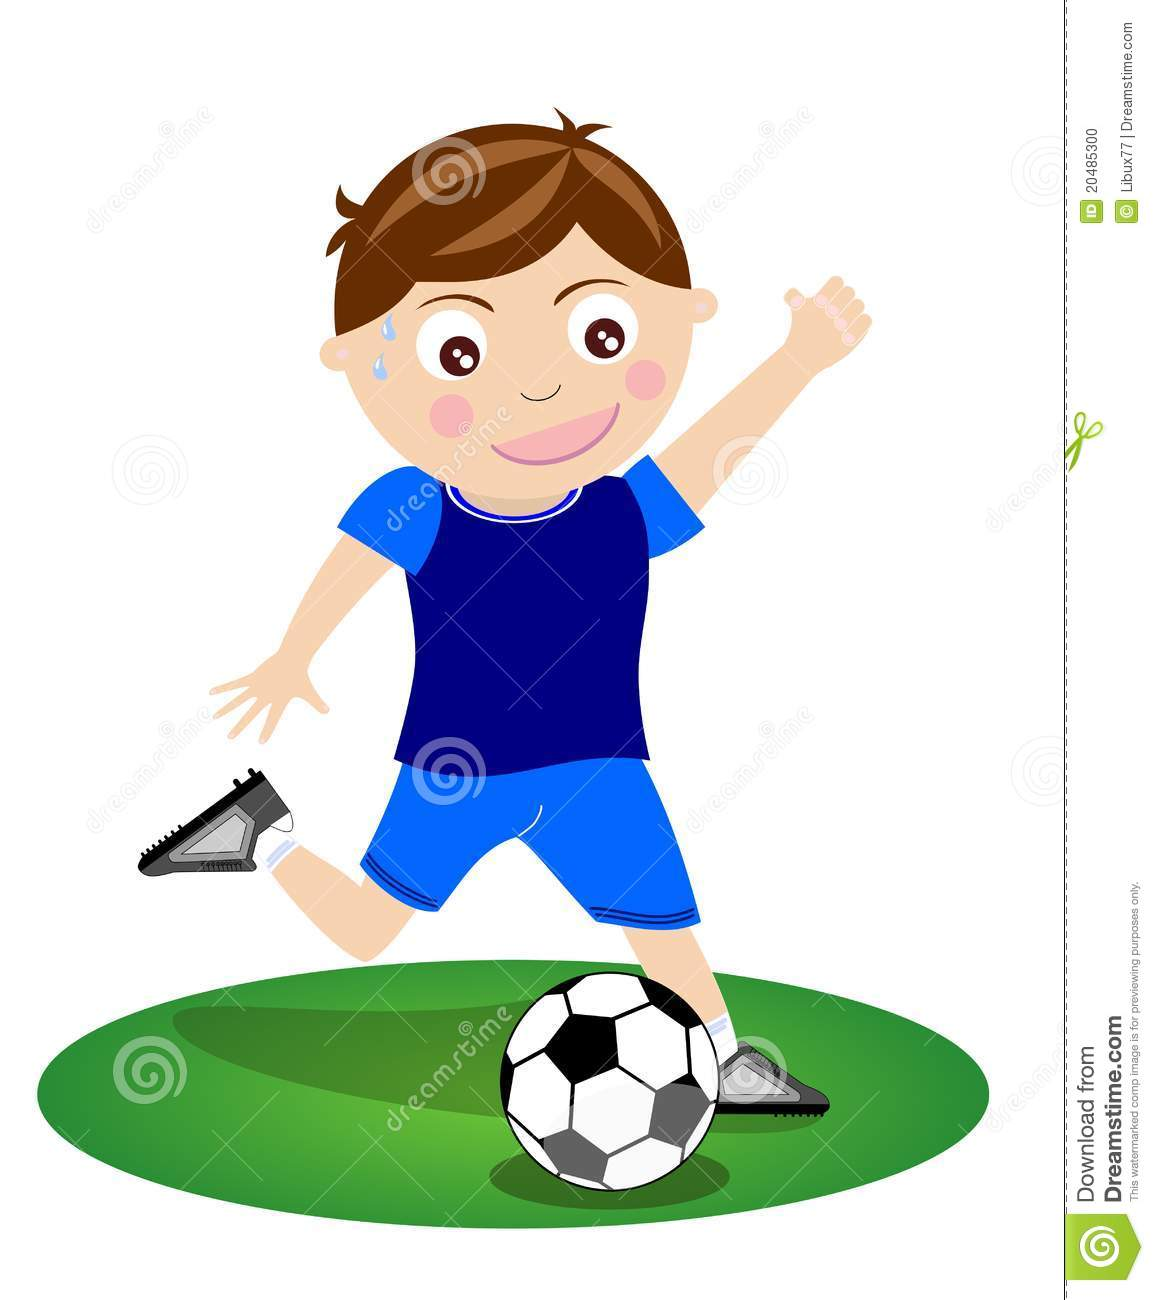 boy kicking soccer ball football isolated stock illustration